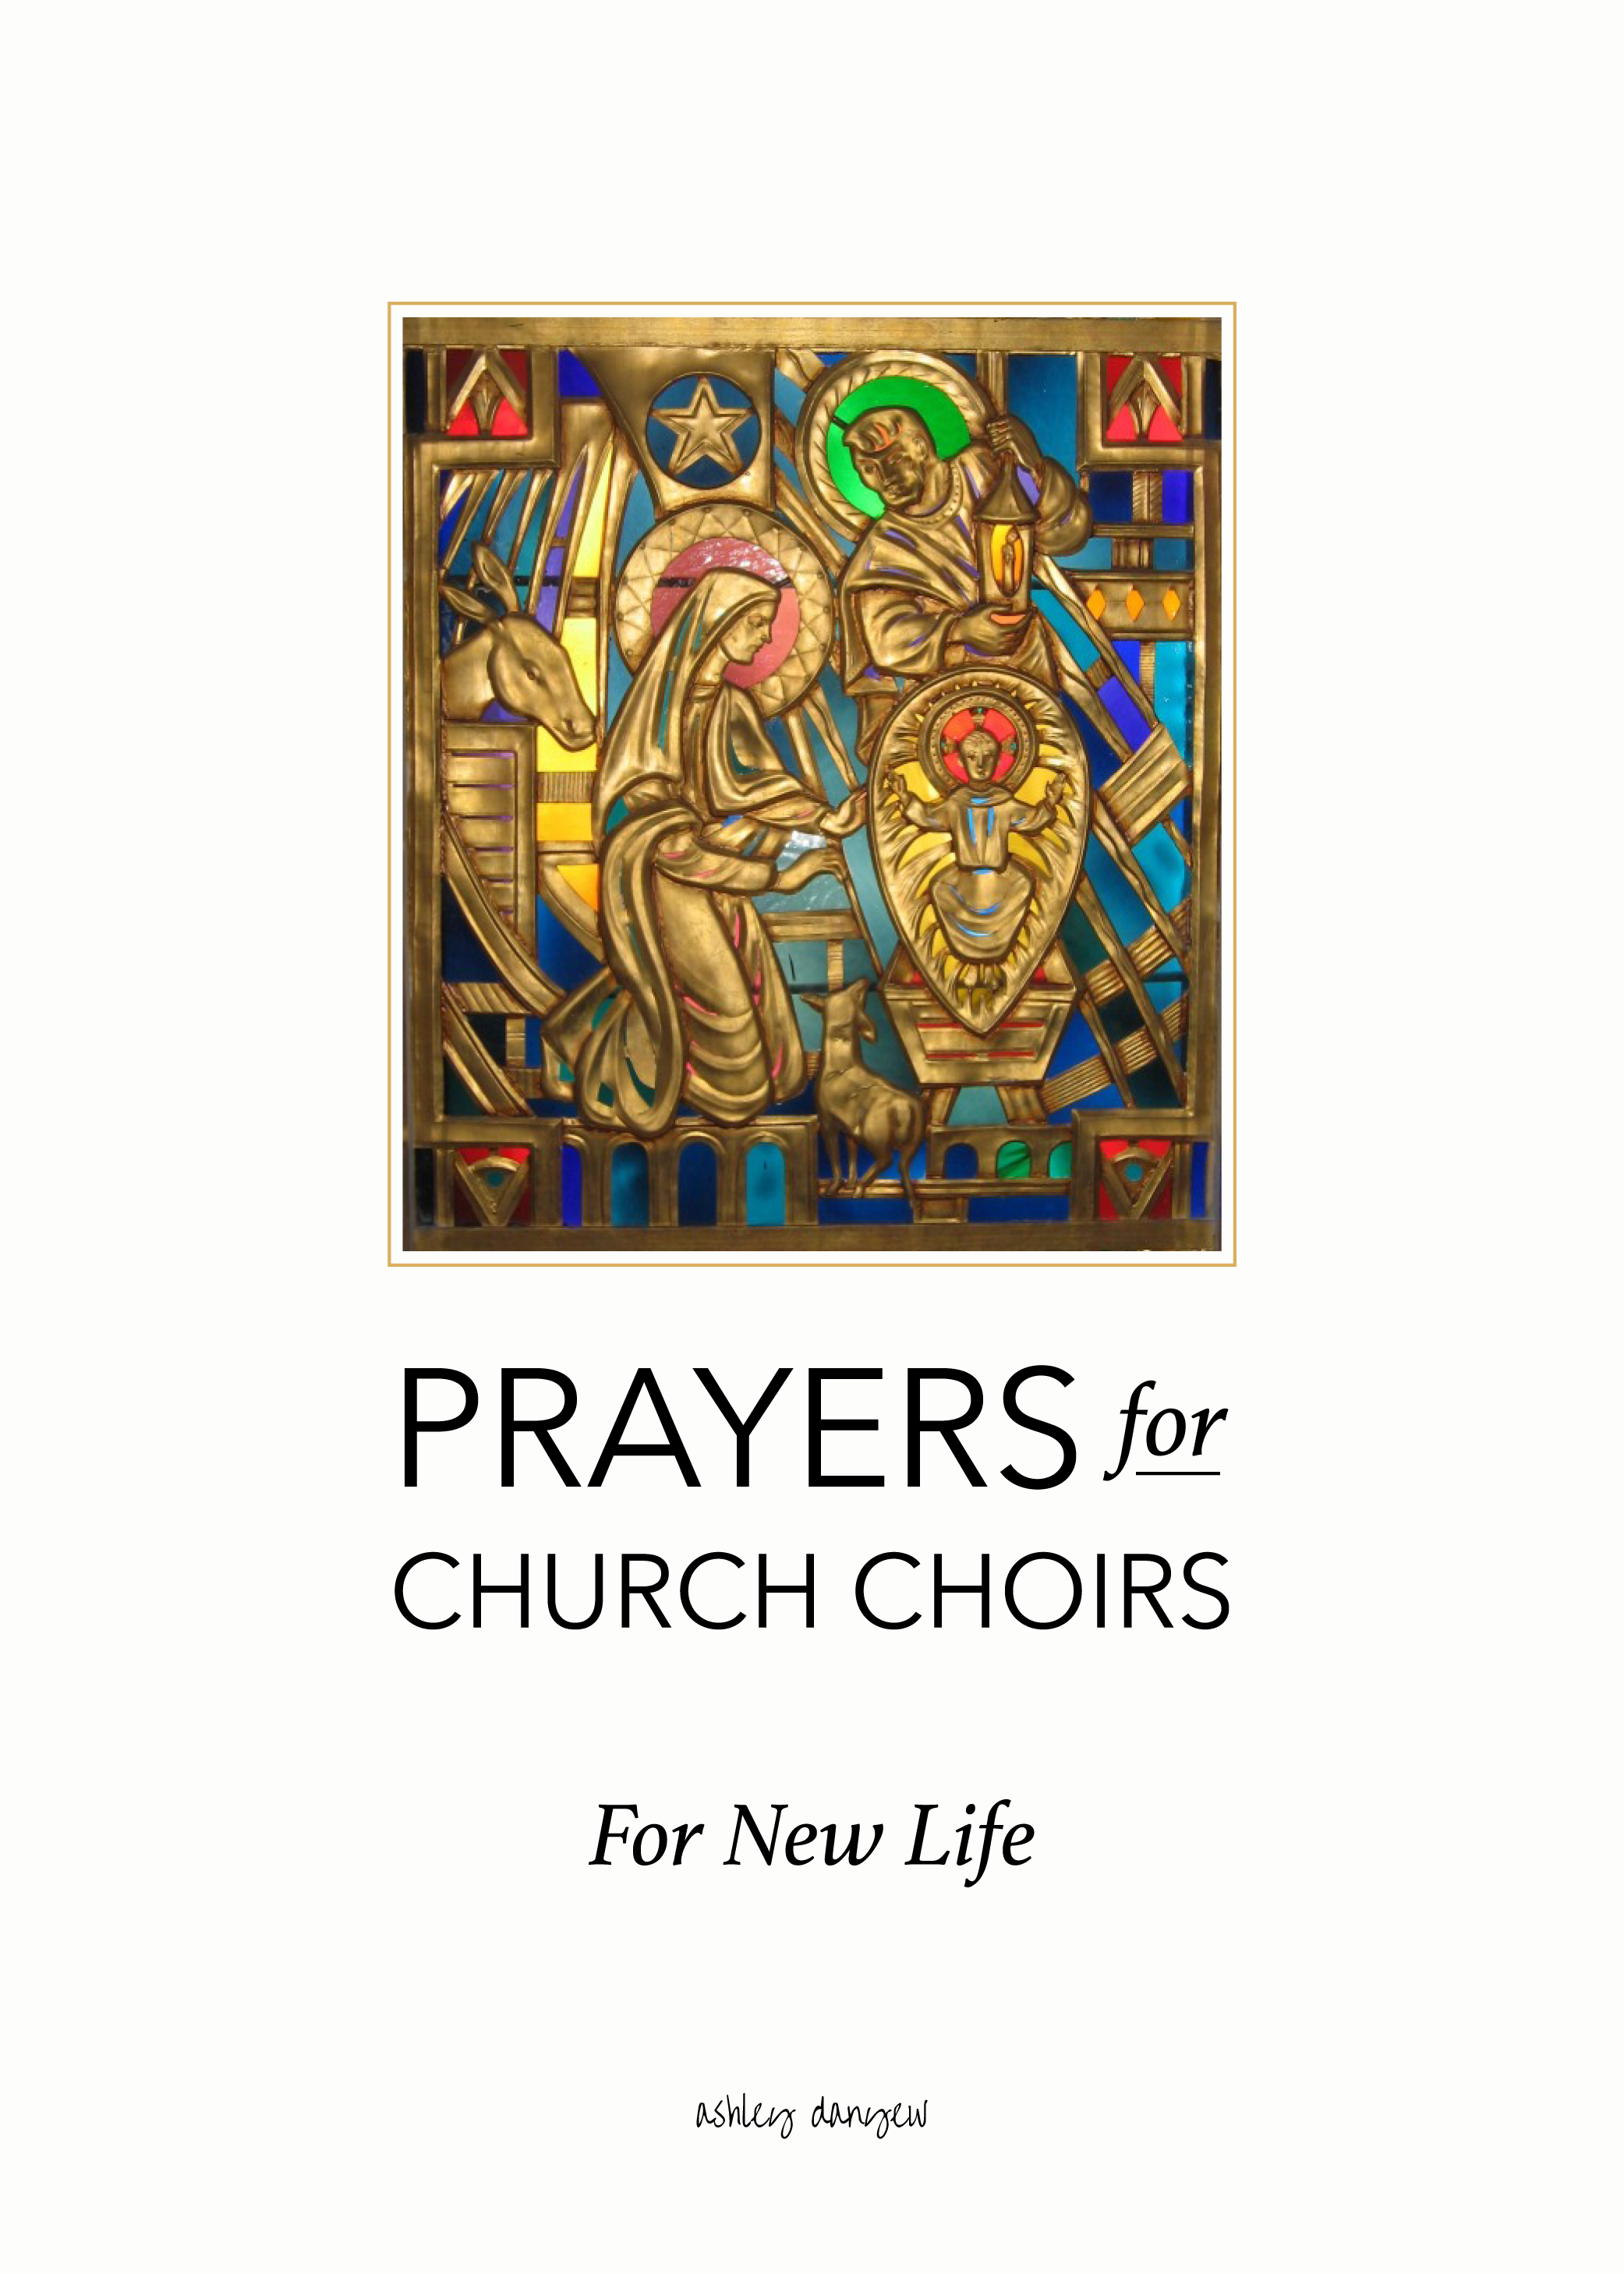 Copy of Prayers for Church Choirs: For New Life